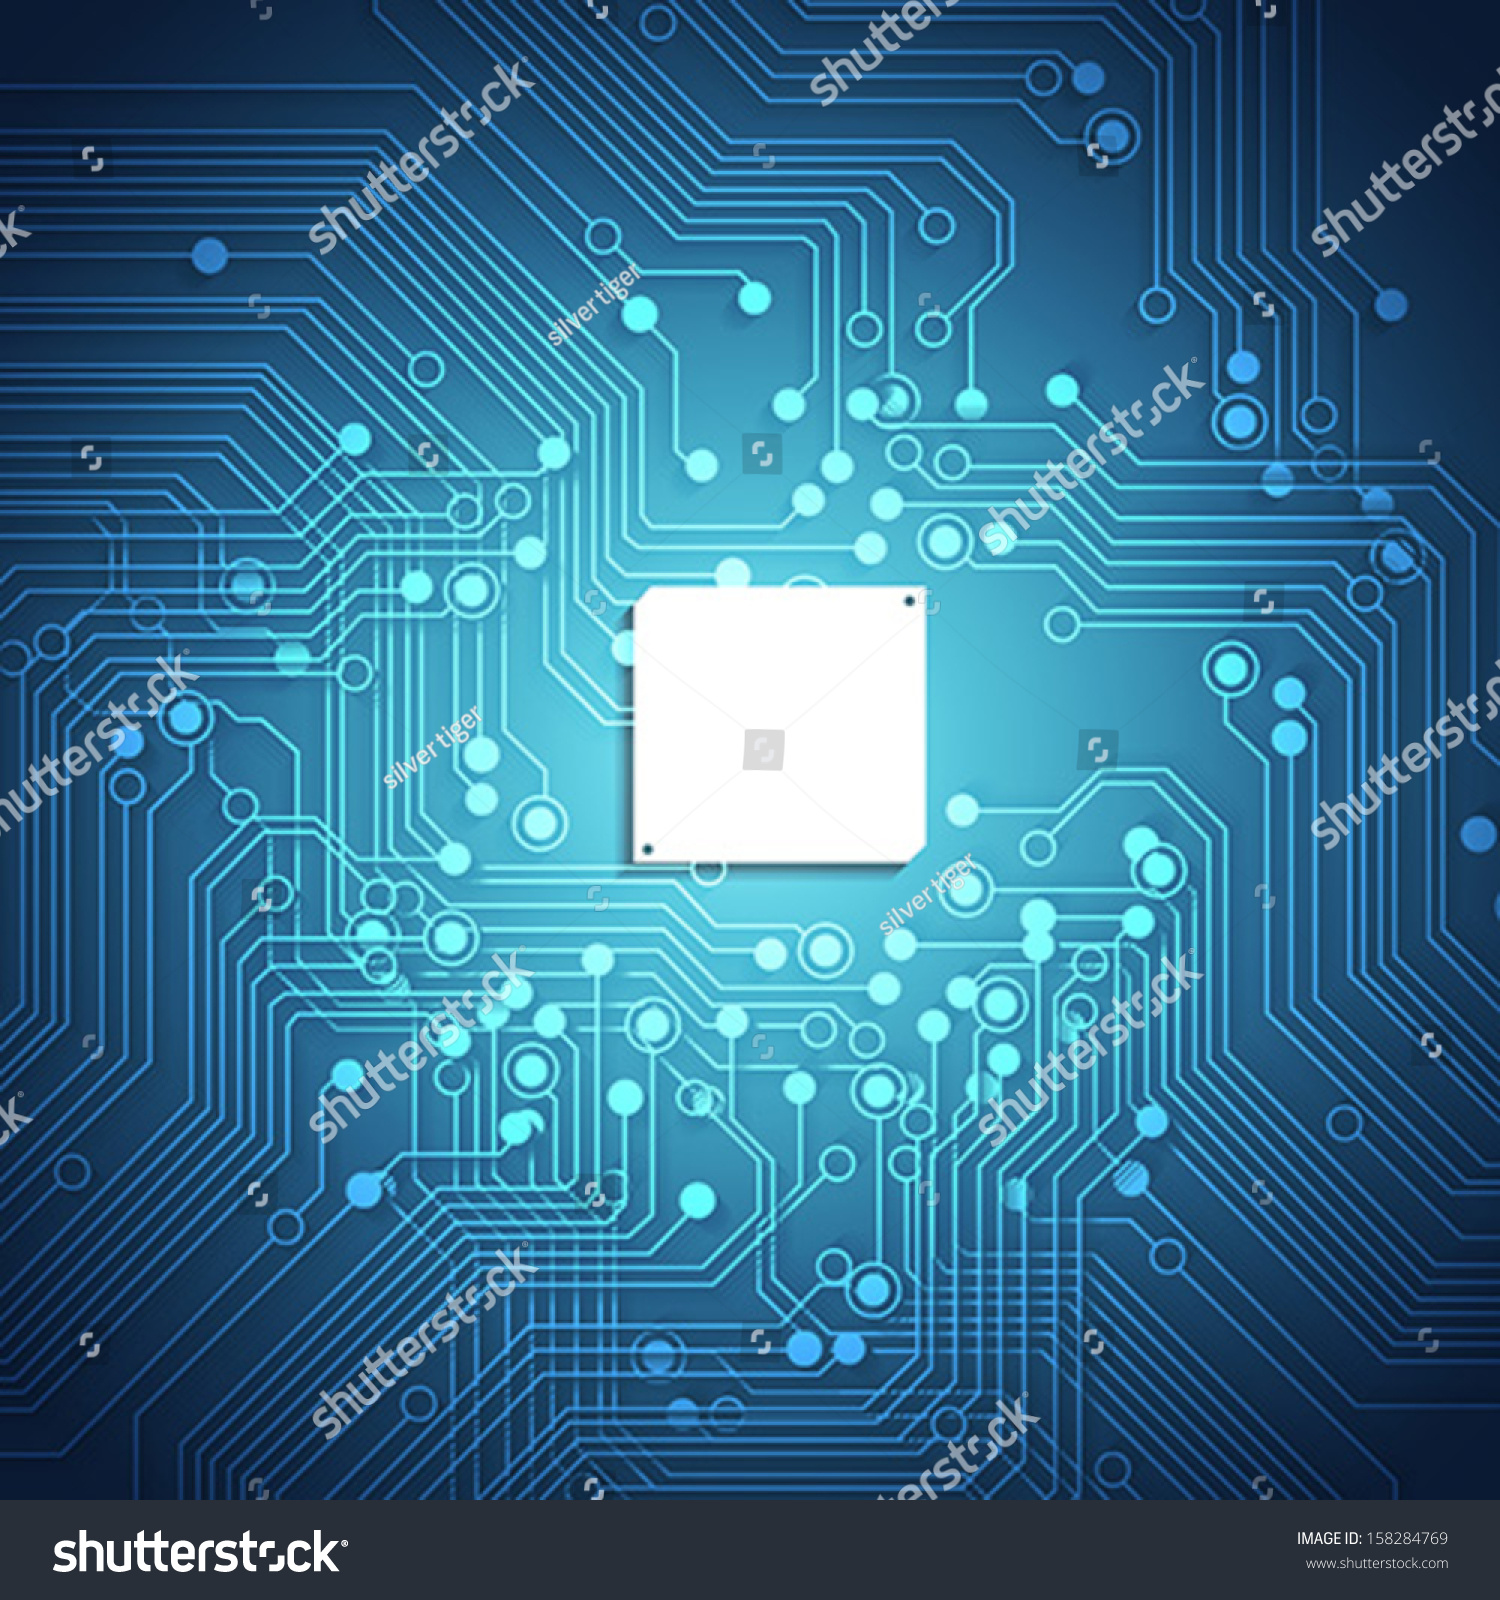 Snap Circuit Board Blue Background Stock Vector Illustration Textures Pinterest Abstract Backgrounds Texture